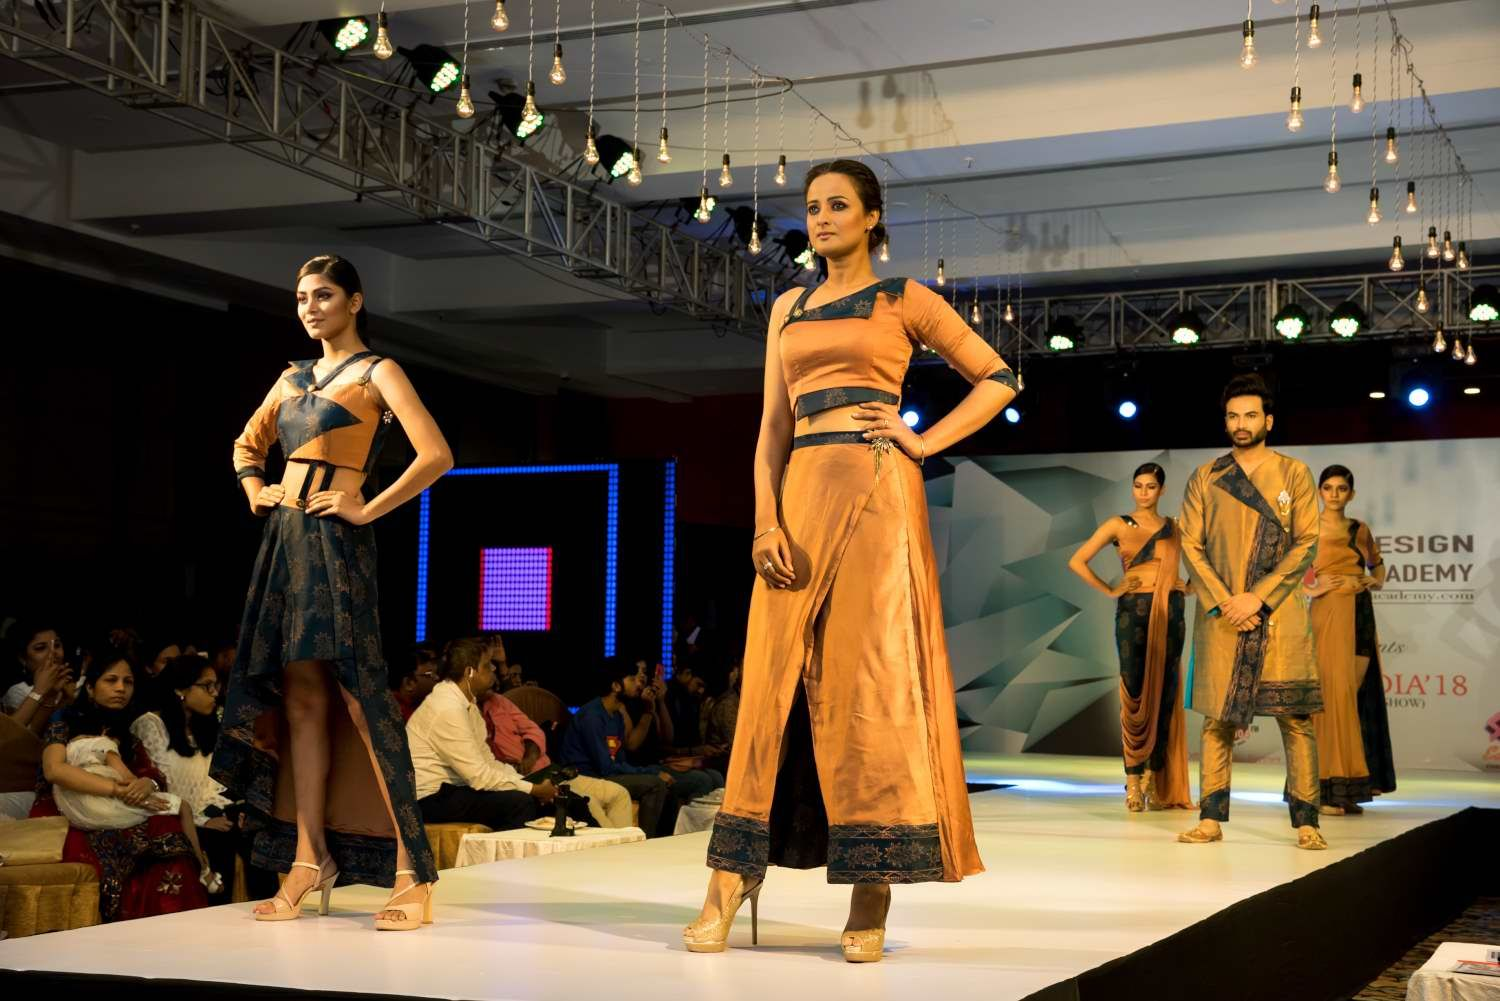 Fashion Designing Institute In Kolkata In 2020 Fashion Designing Course Interior Design Institute Fashion Designing Institute